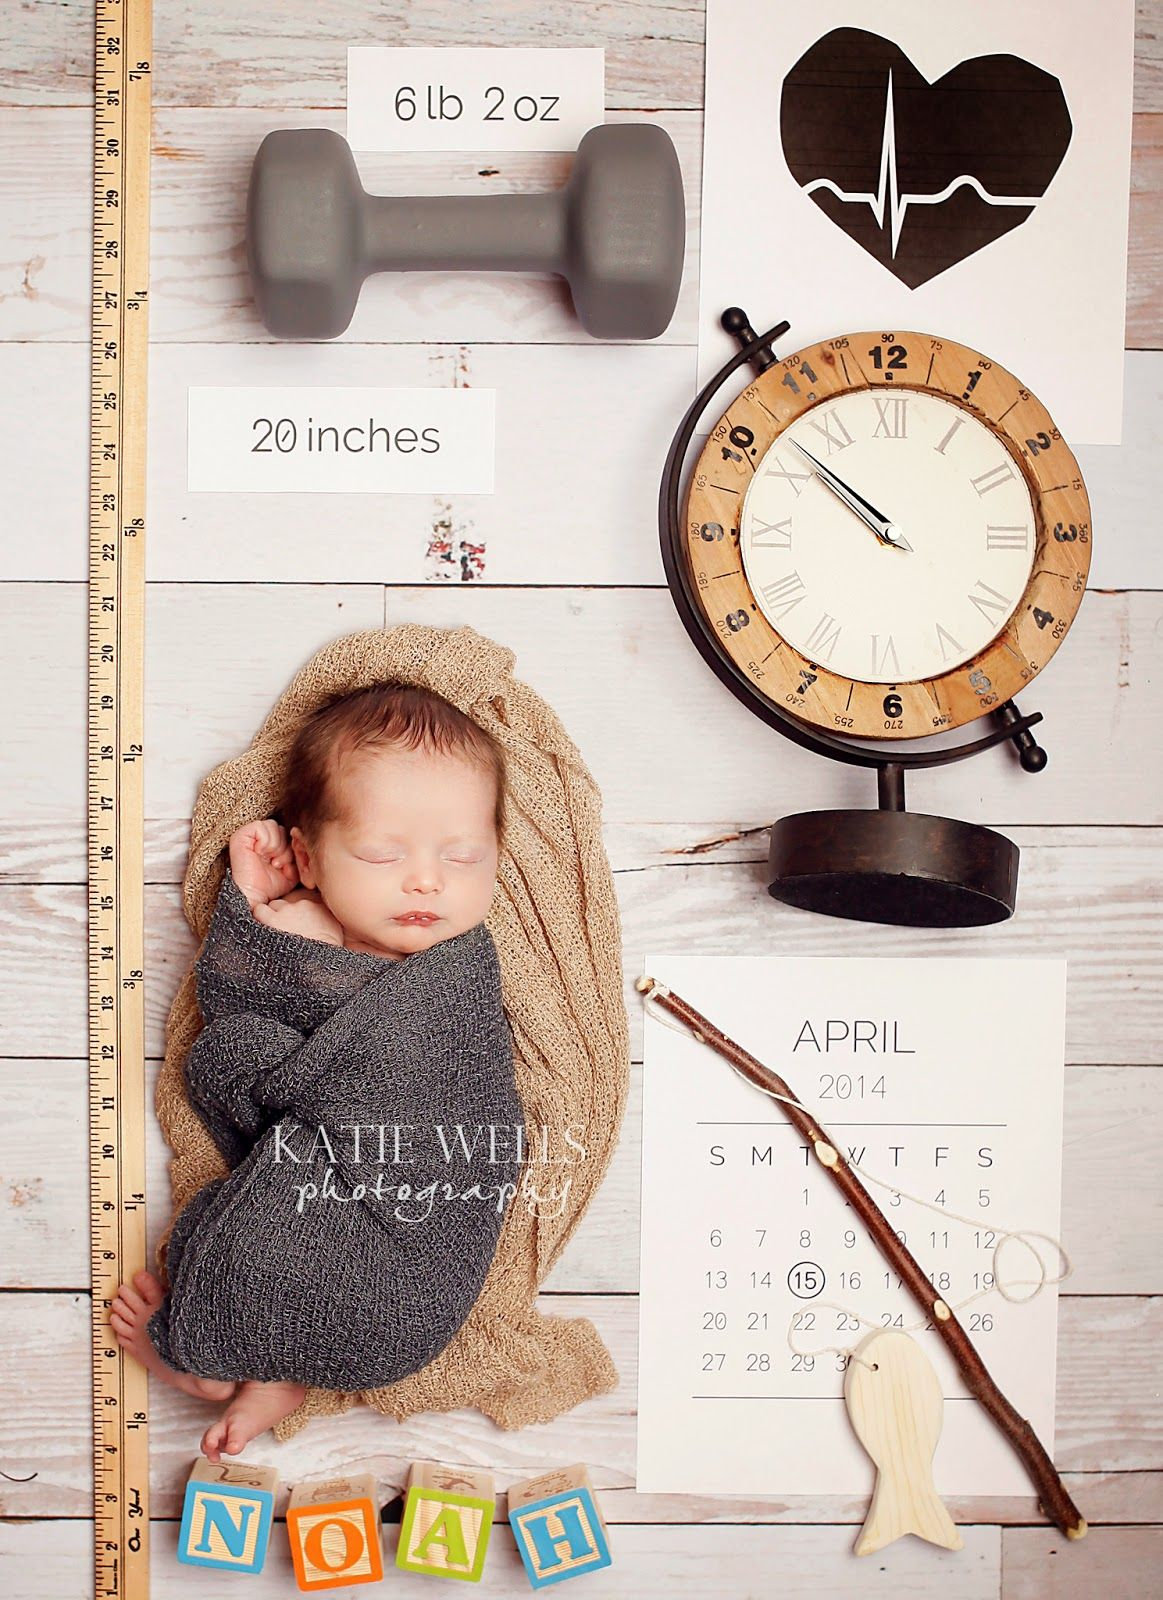 Cute Birth Announcement idea Katie Wells Photography Idaho Falls – Colorado Springs Birth Announcements